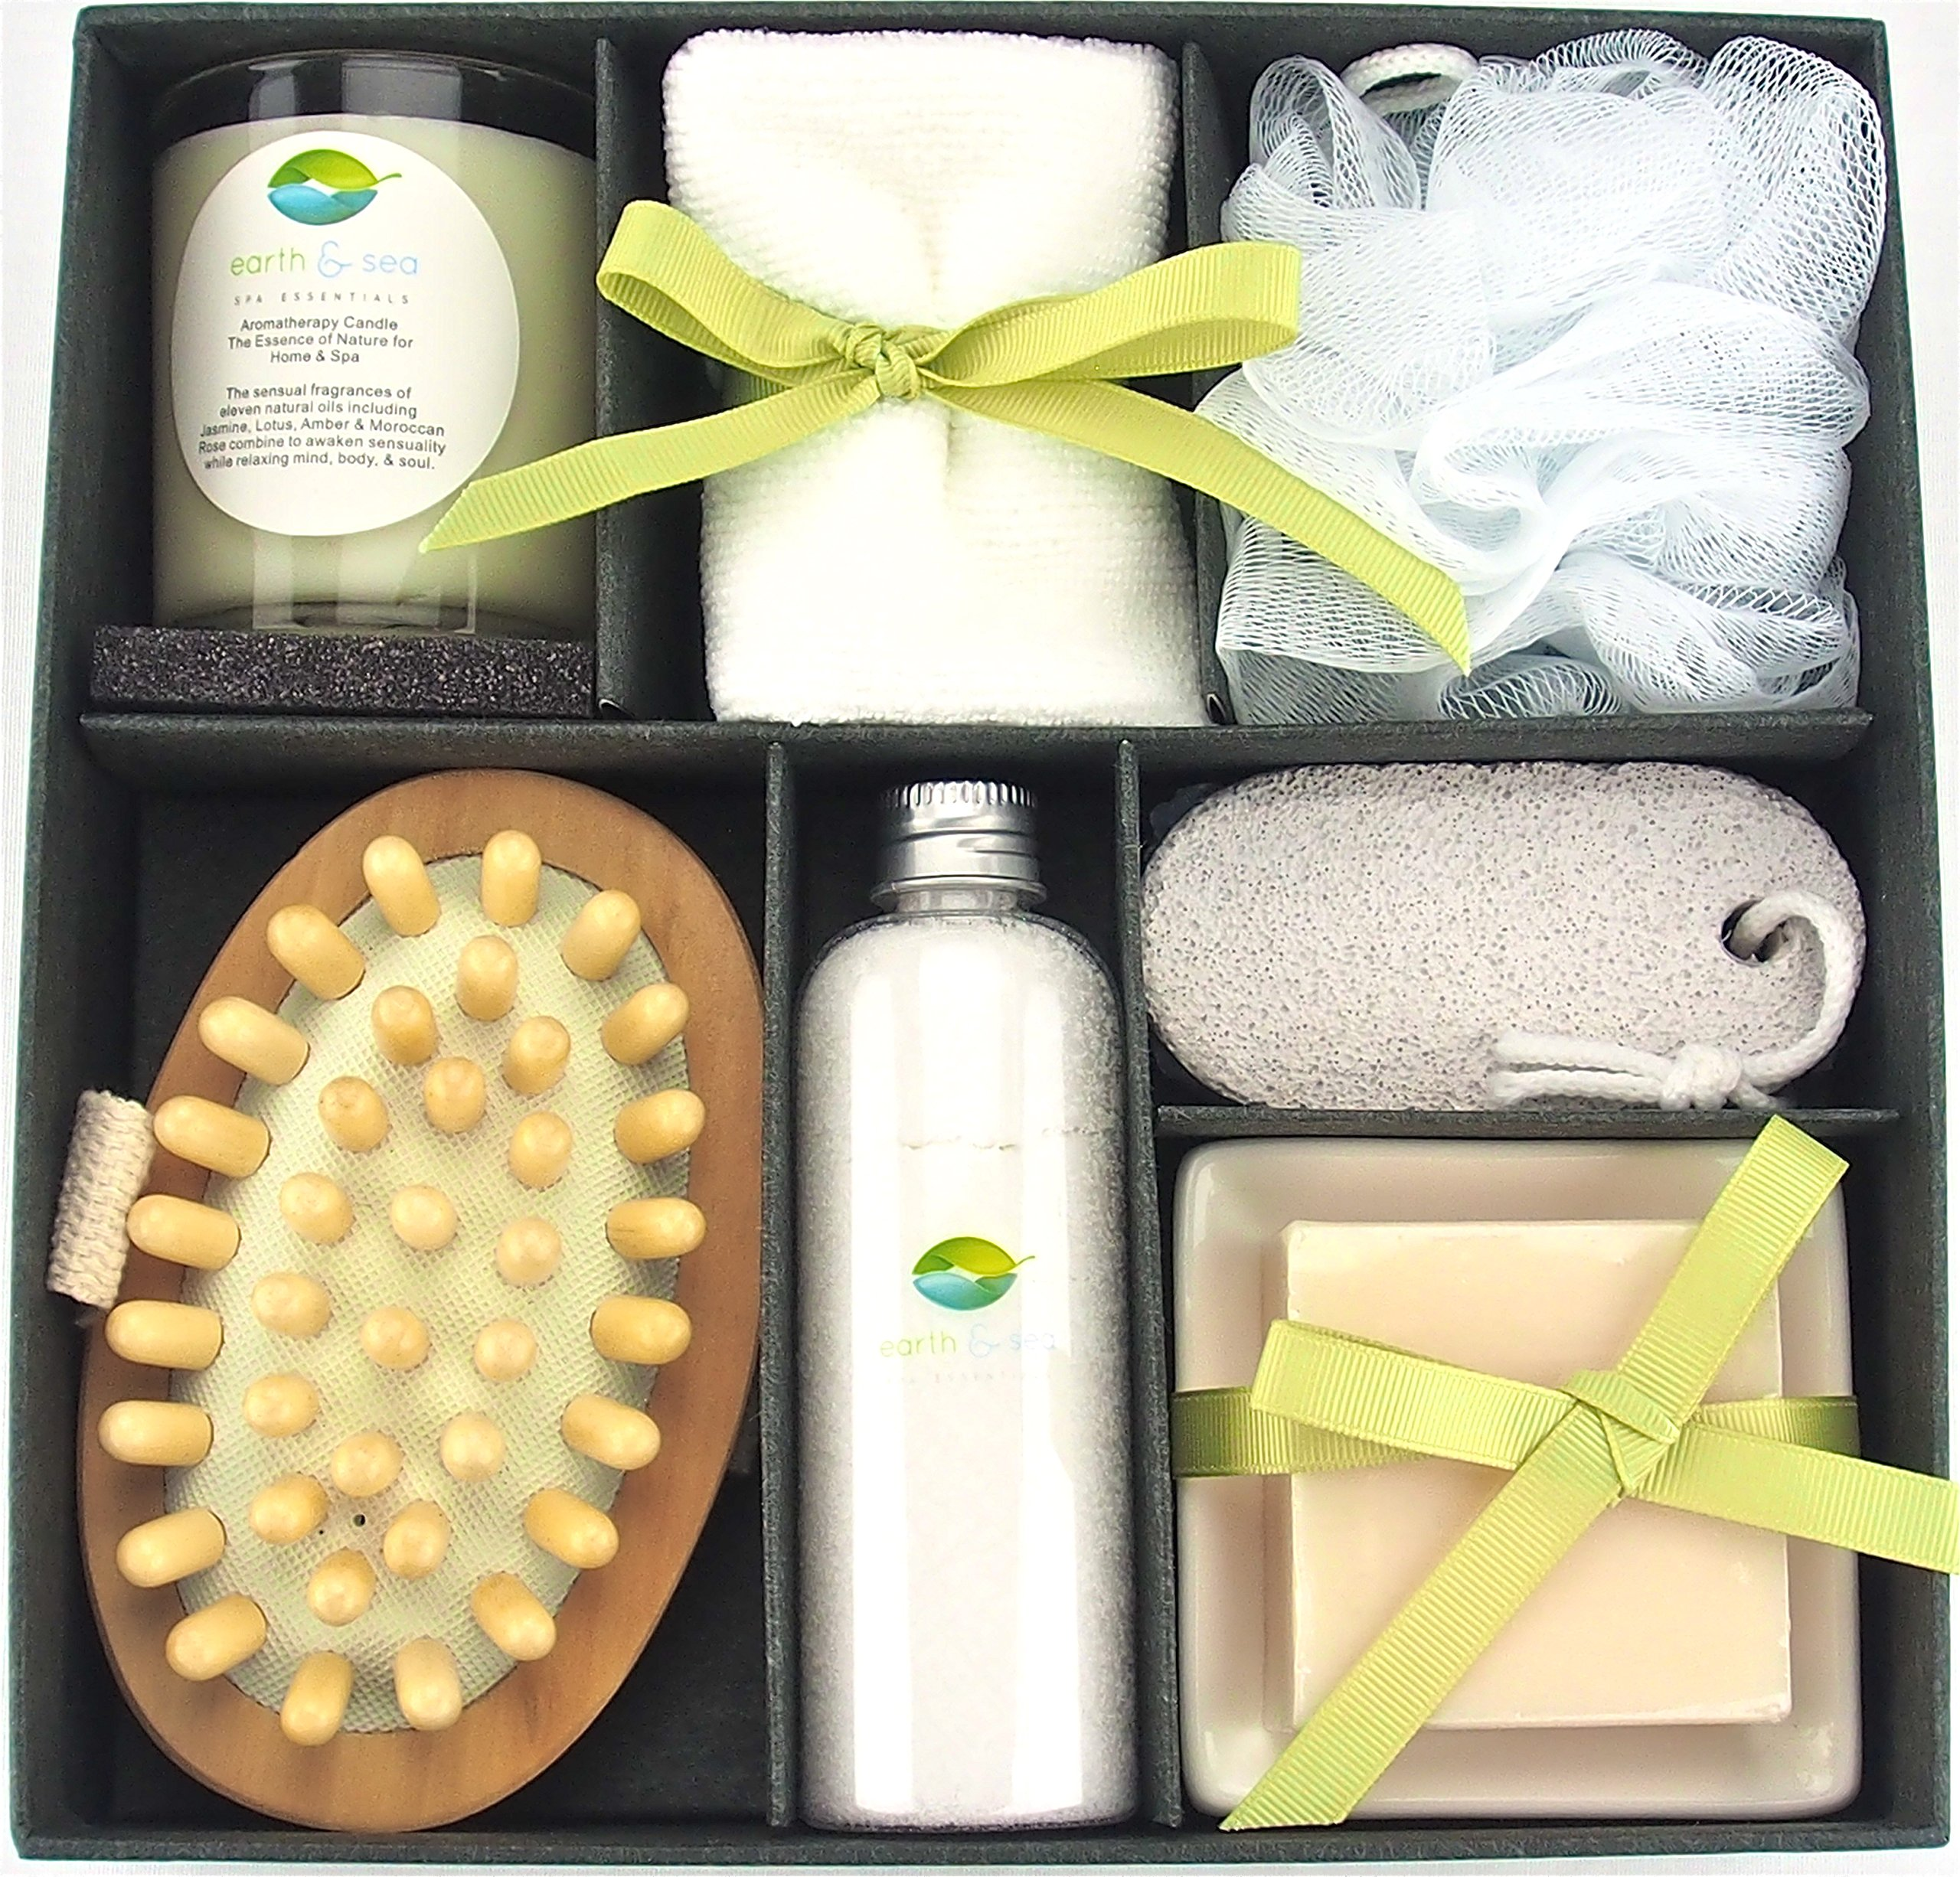 Earth & Sea Spa Essentials Bath Set-Soy Wax Candle, Cotton Bath Cloth, Exfoliating Sponge, Pumice Stone, Wooden Massager Brush, Salts, Bath Soap-Green Gift Set